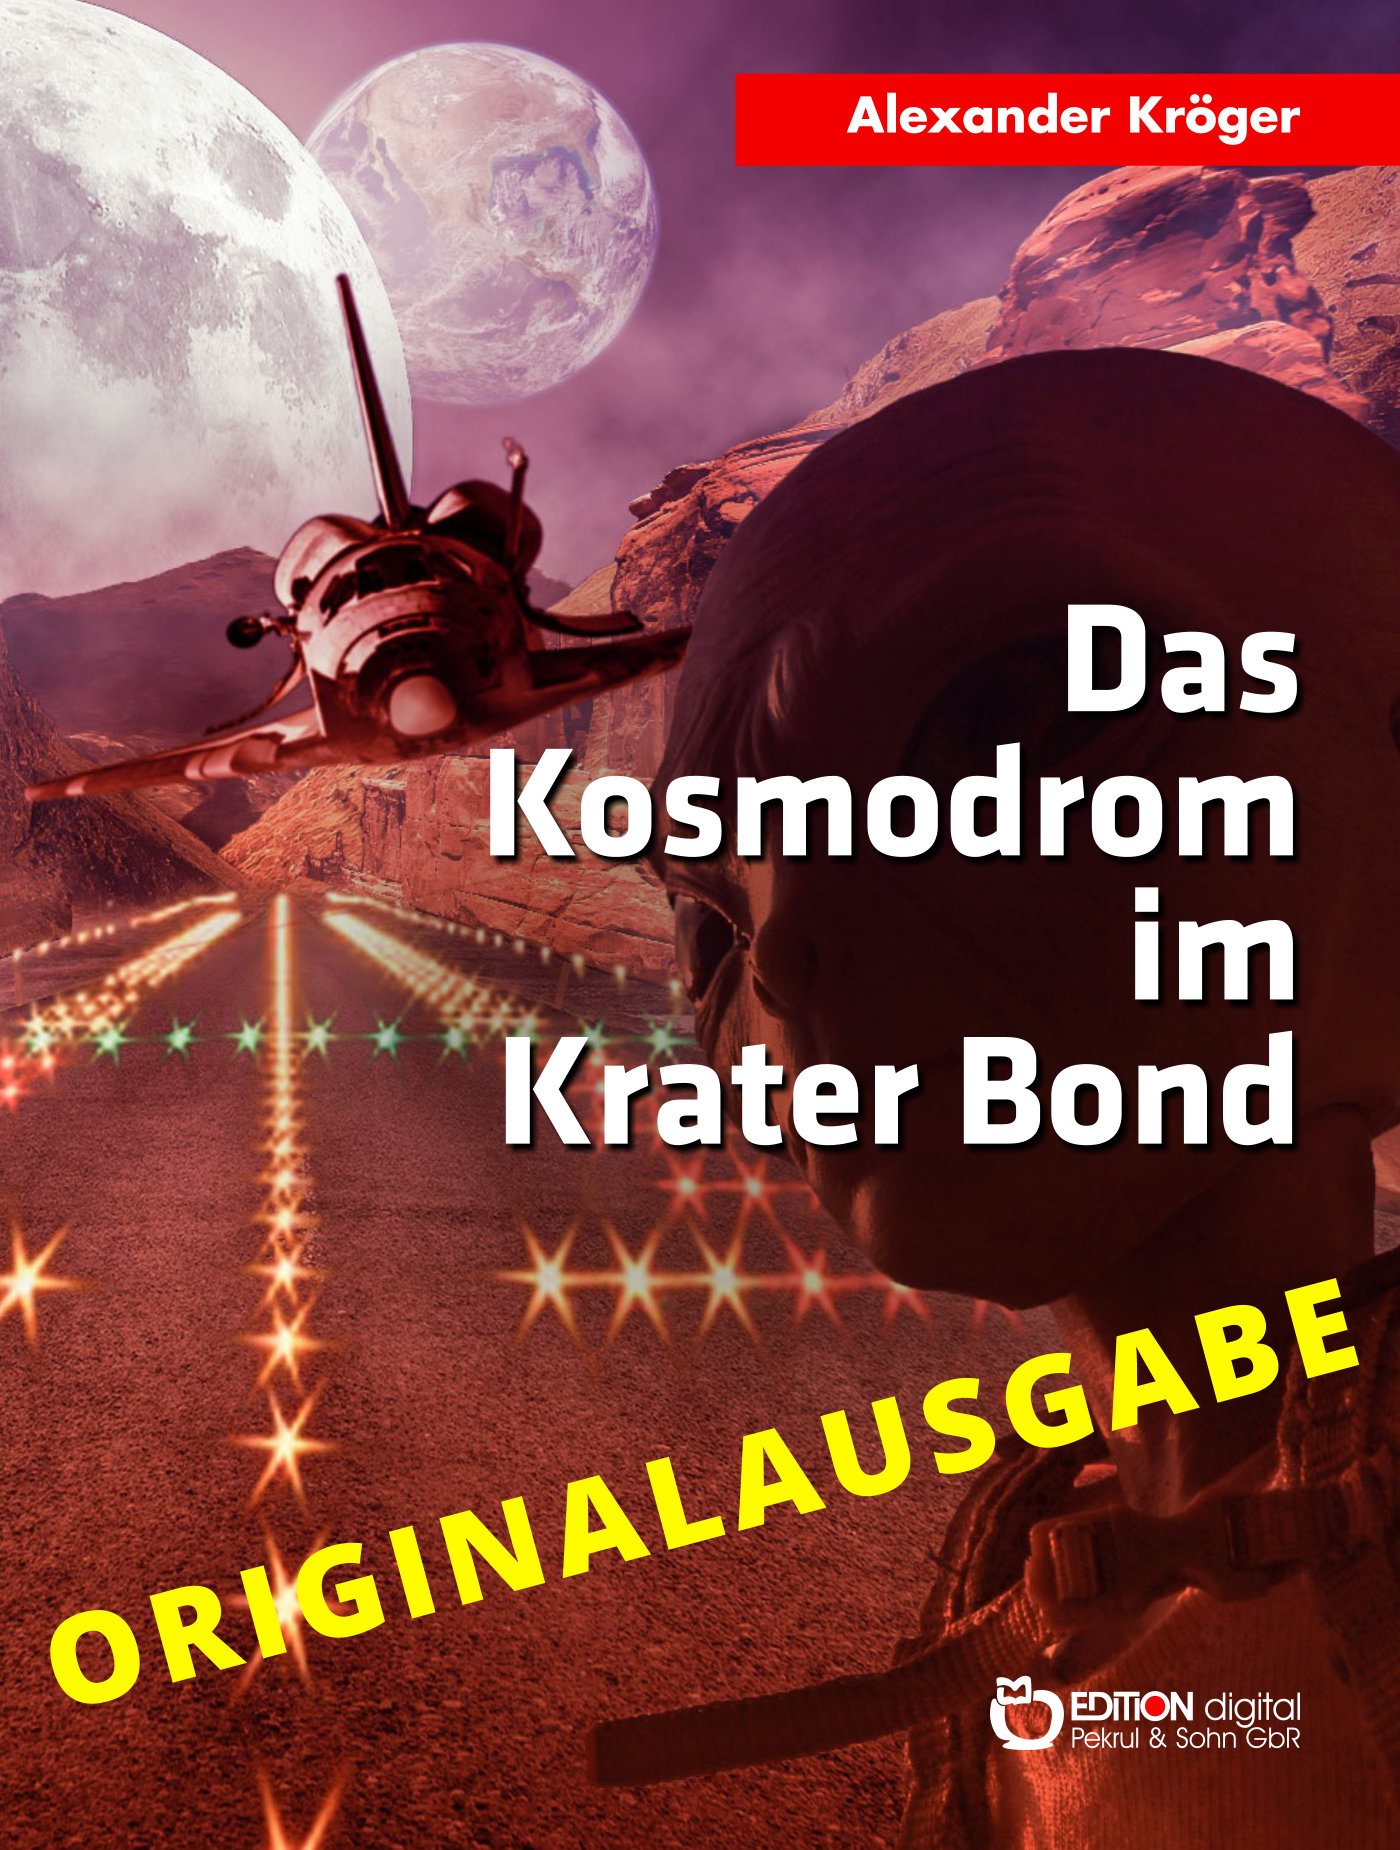 Das Kosmodrom im Krater Bond - Originalausgabe. Wissenschaftlich-phantastischer Roman von Alexander Kröger